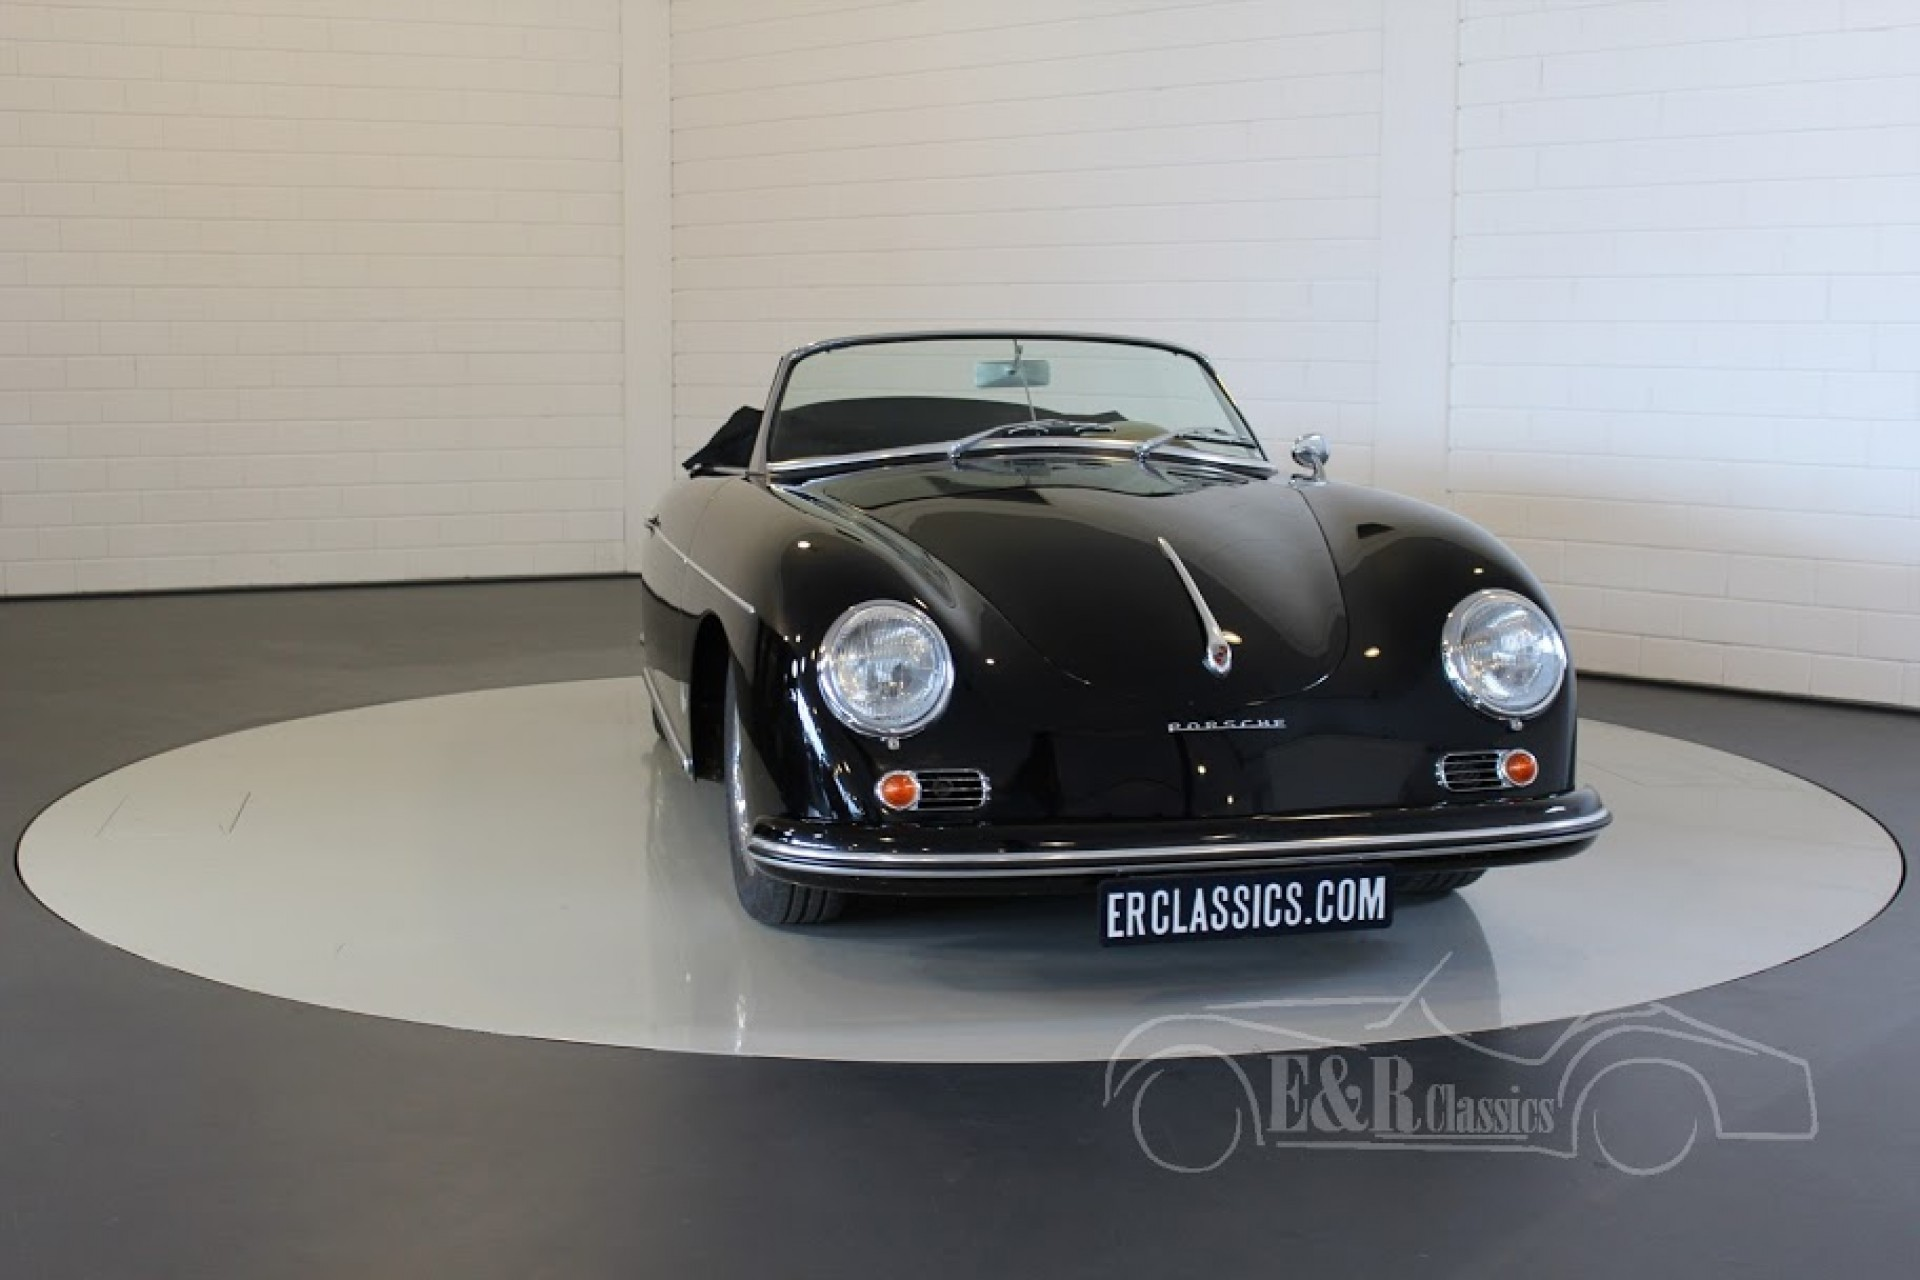 Porsche Classic Cars Oldtimers For Sale At E R 356a Wiper Wiring 356 A Convertible D 1959 View All Photos